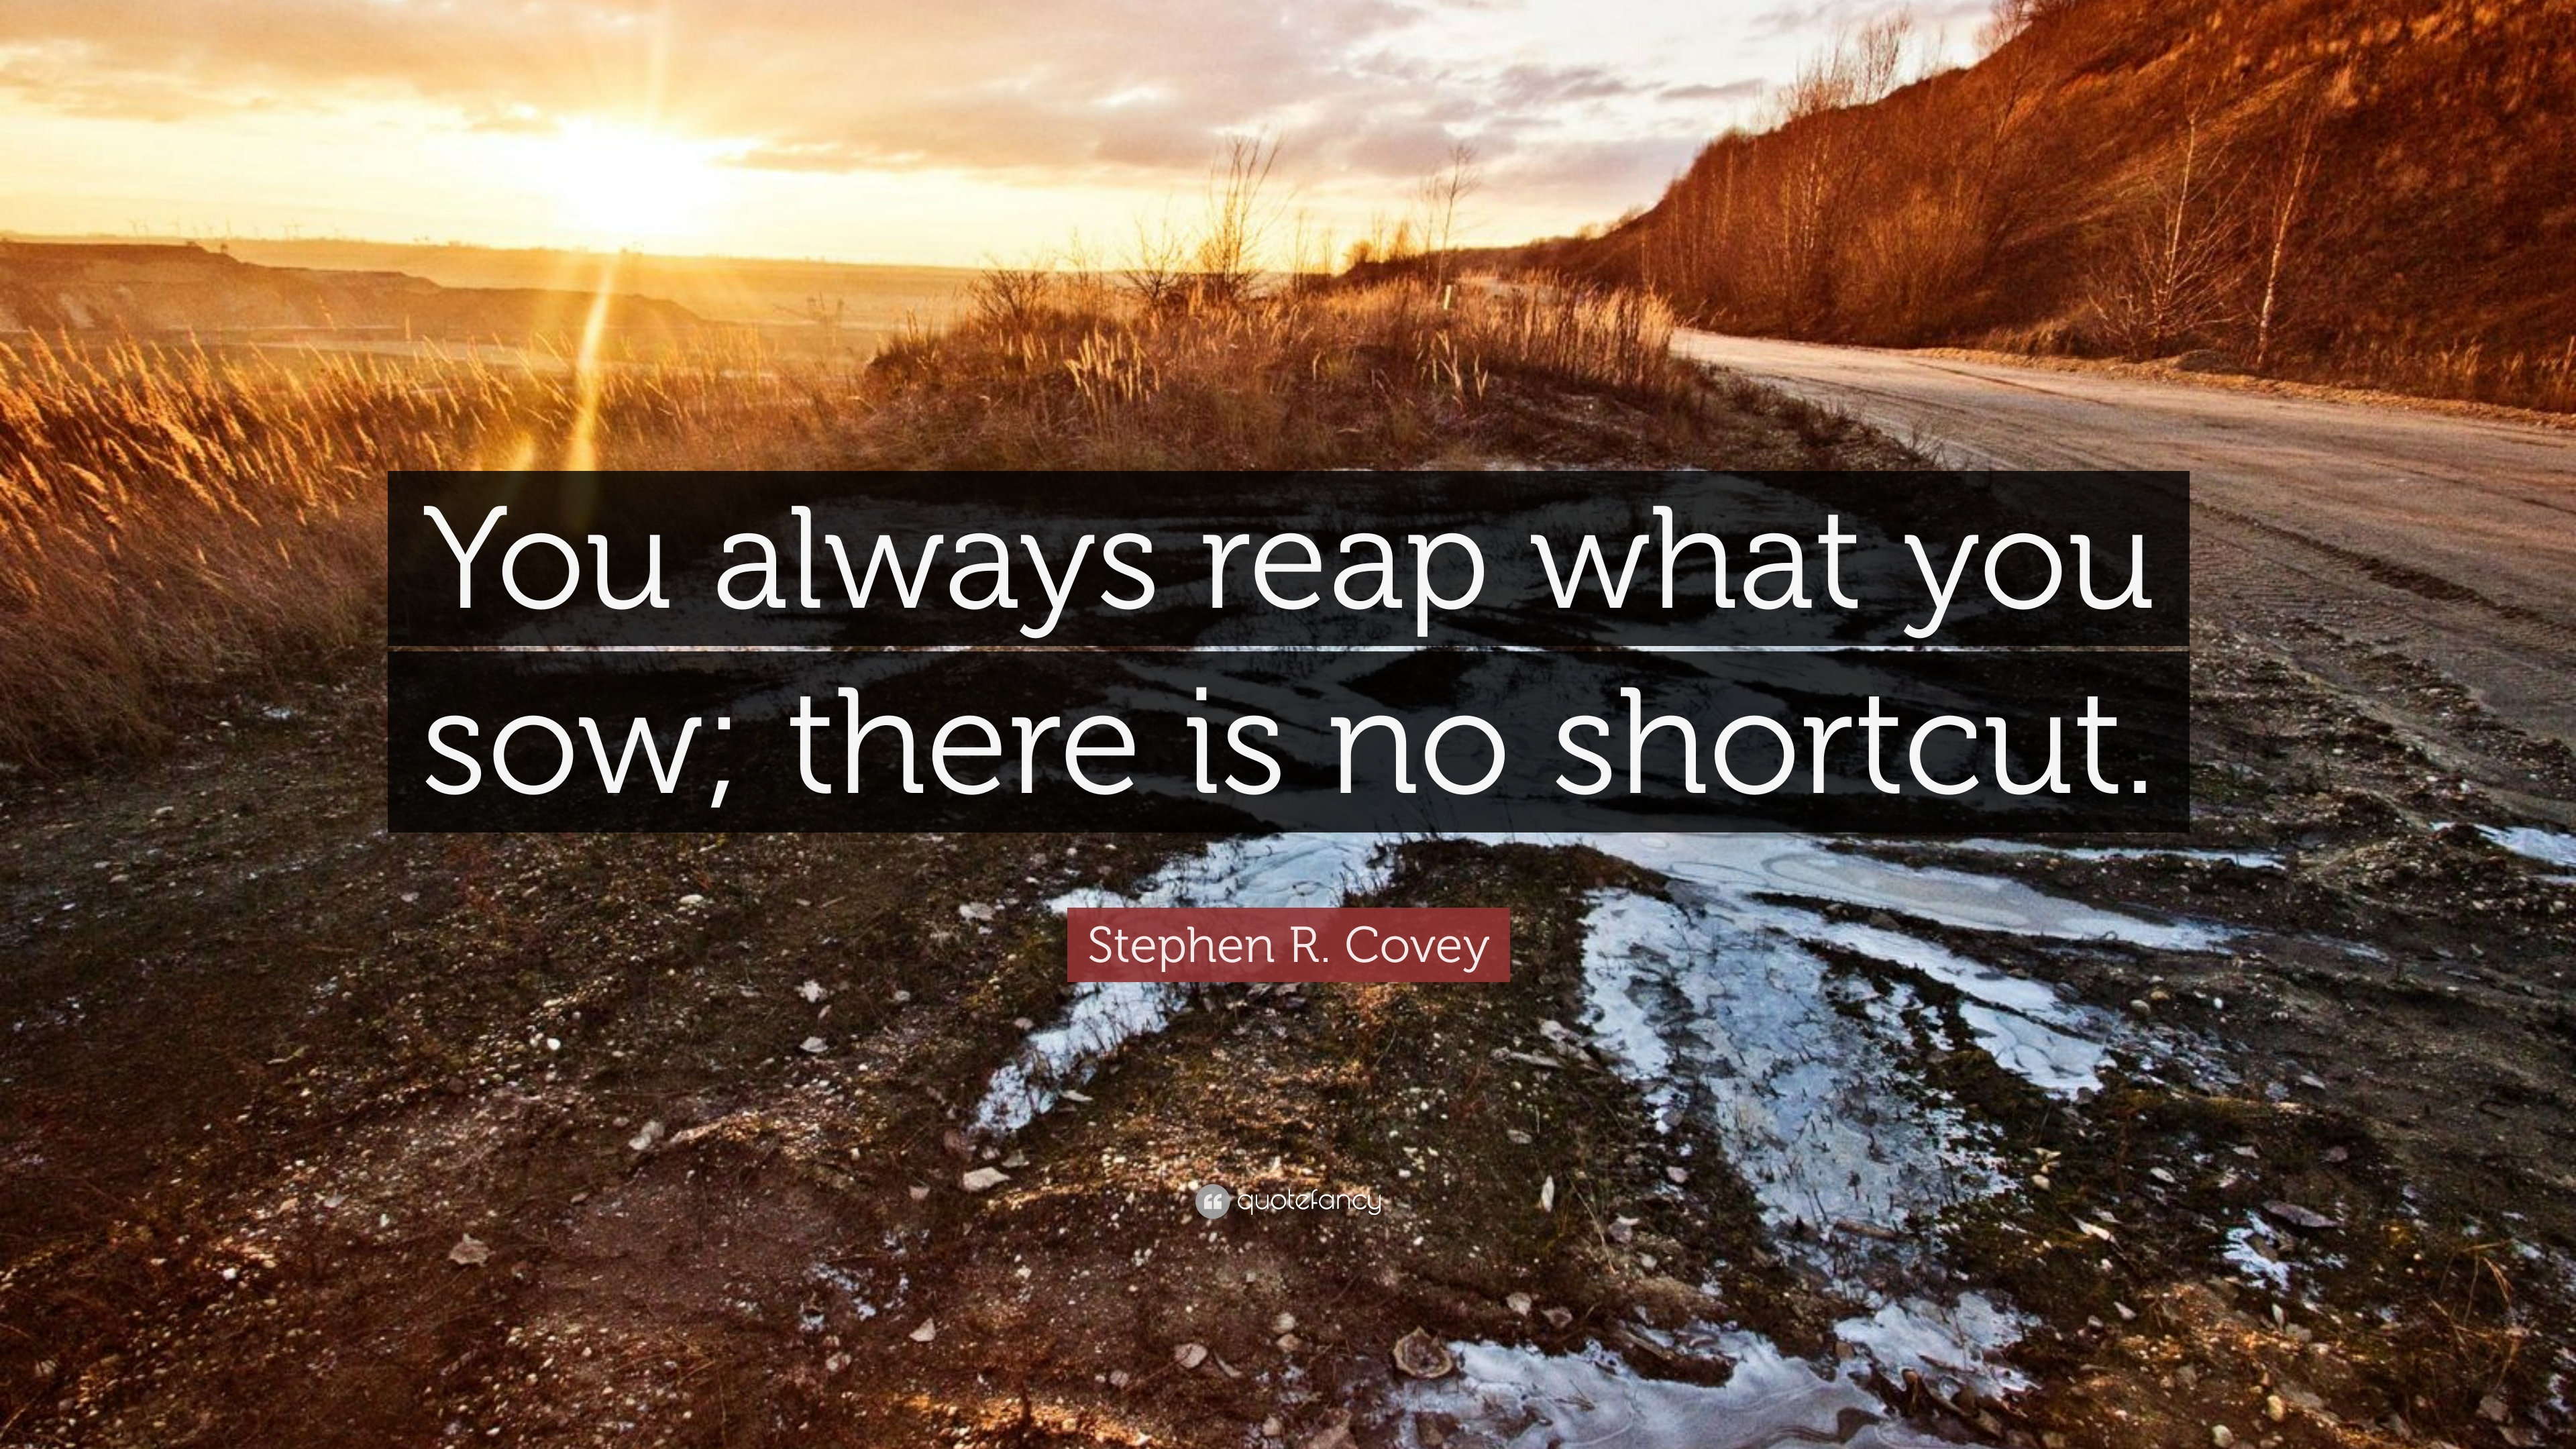 Reap What You Sow Quotes | Stephen R Covey Quote You Always Reap What You Sow There